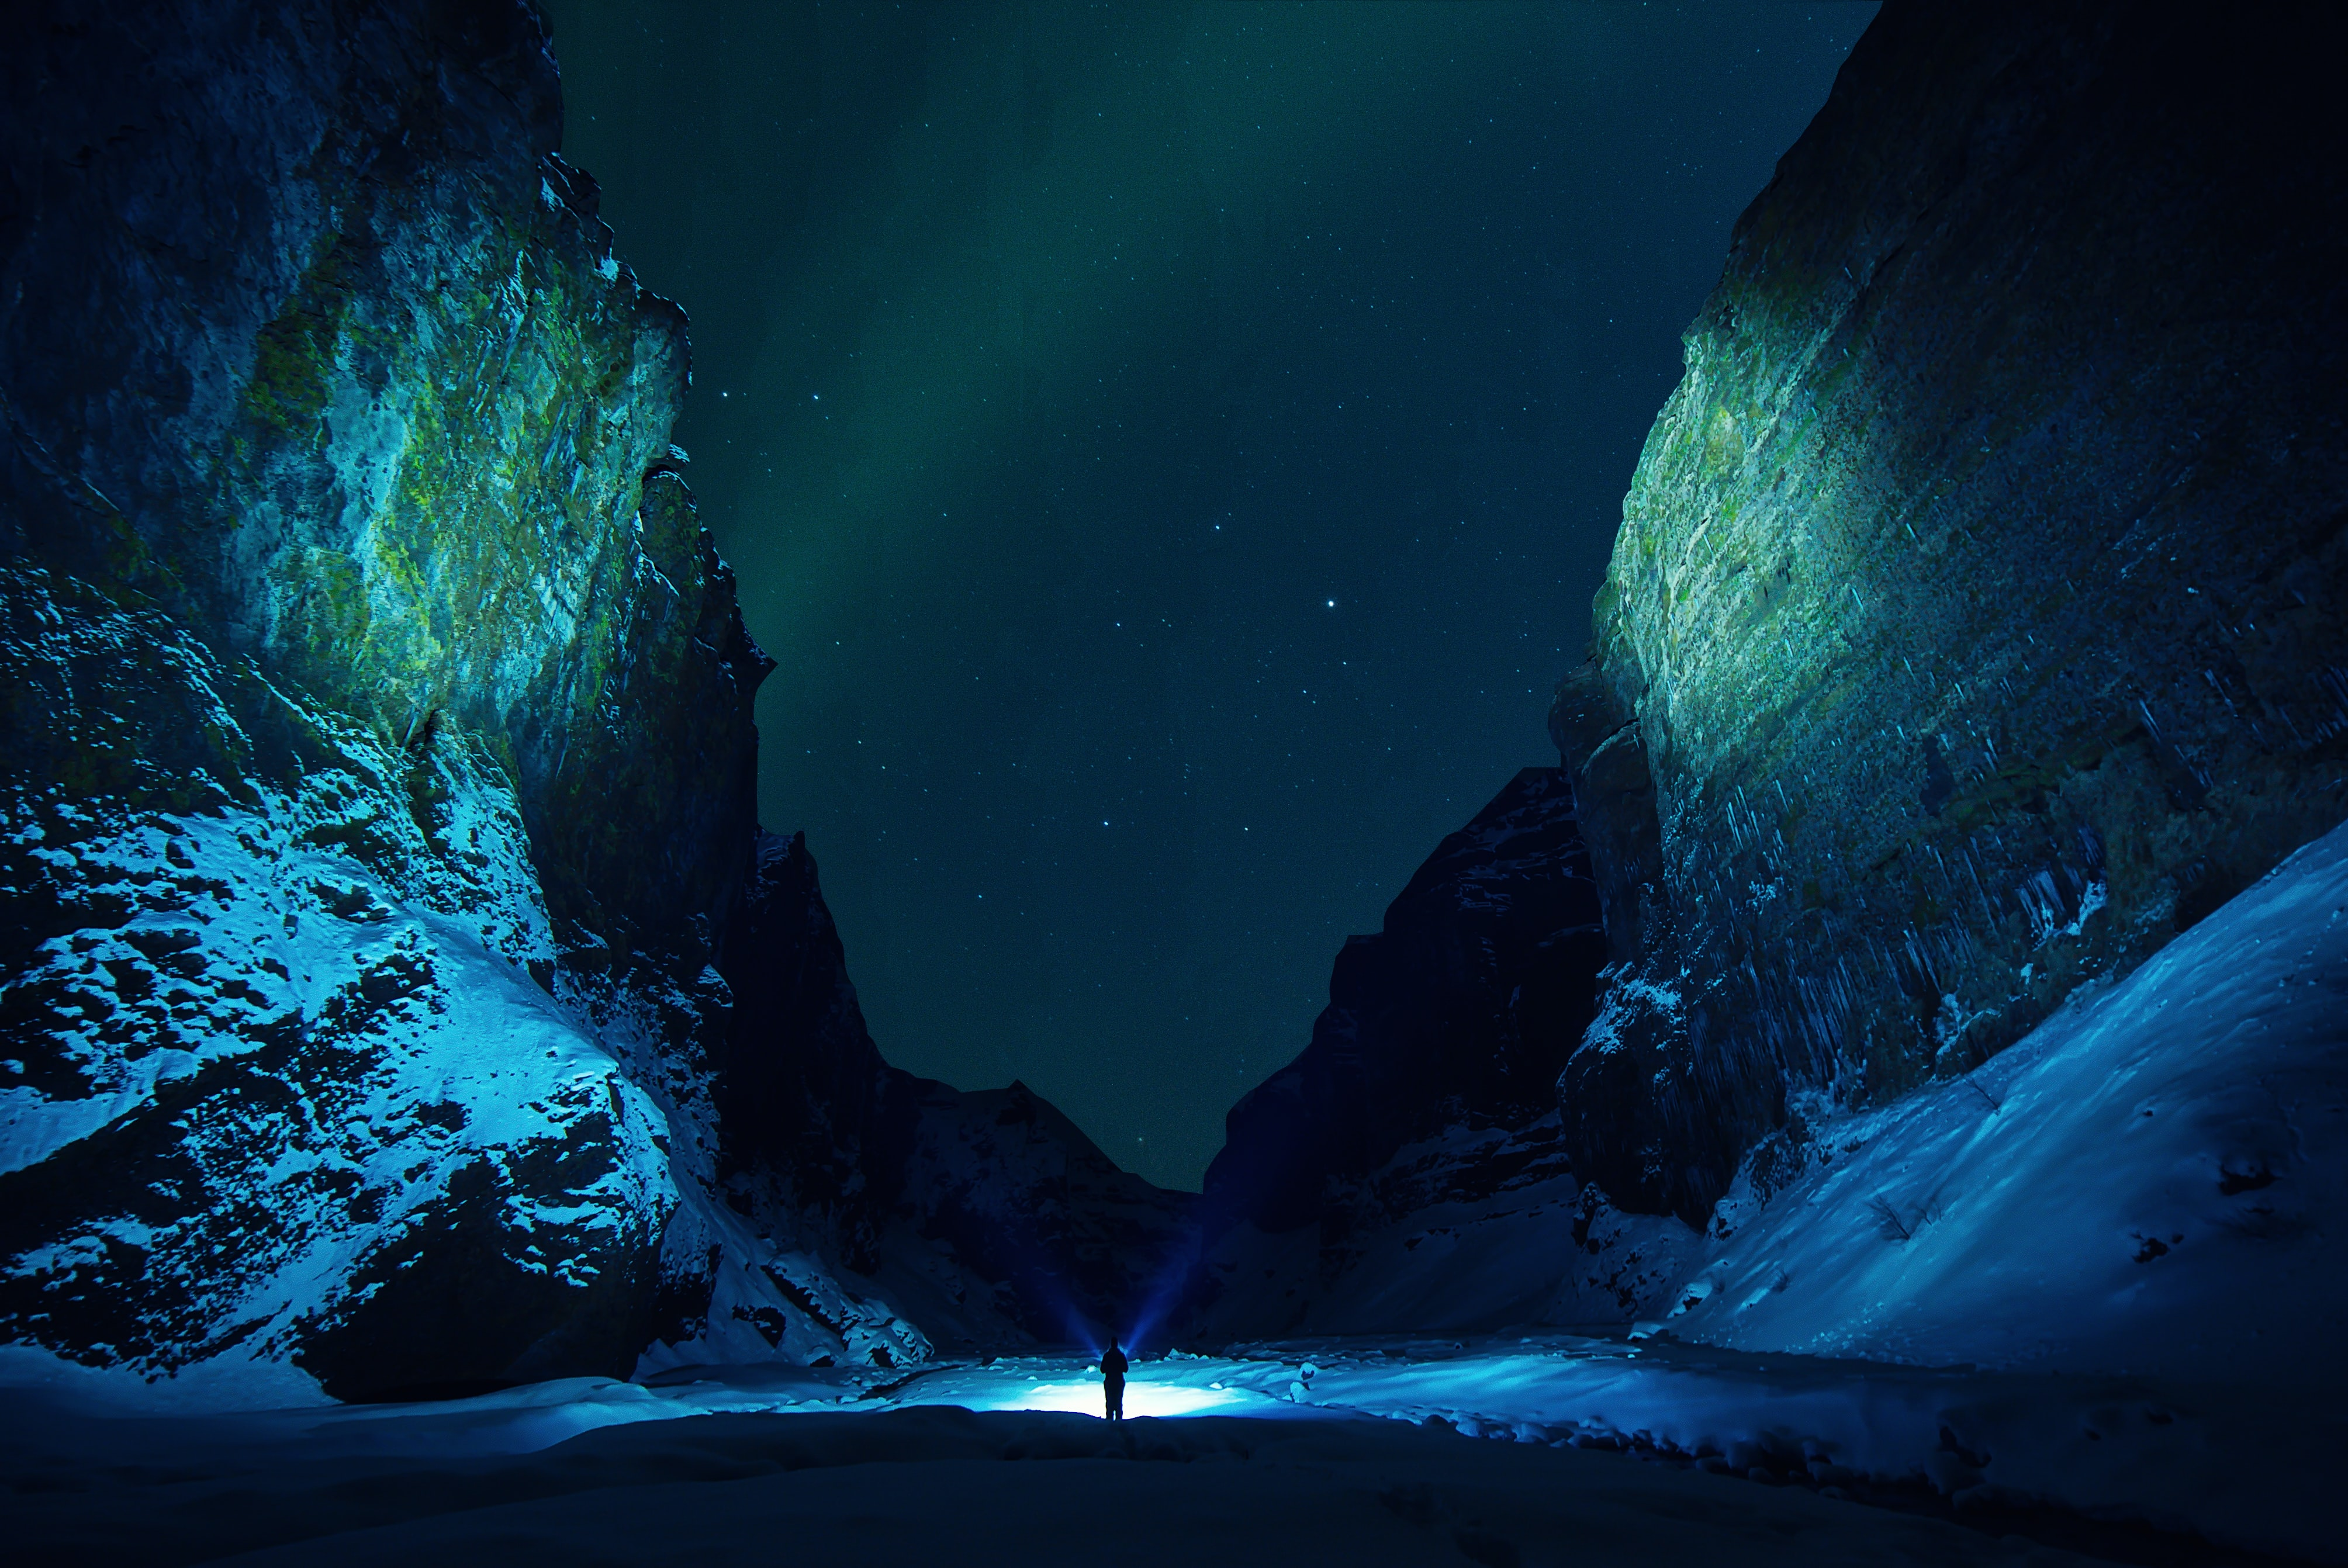 Iceland's Northern Lights fill the entirety of Stakkholtsgja Canyon and illuminates a silhouette of a person to the night sky